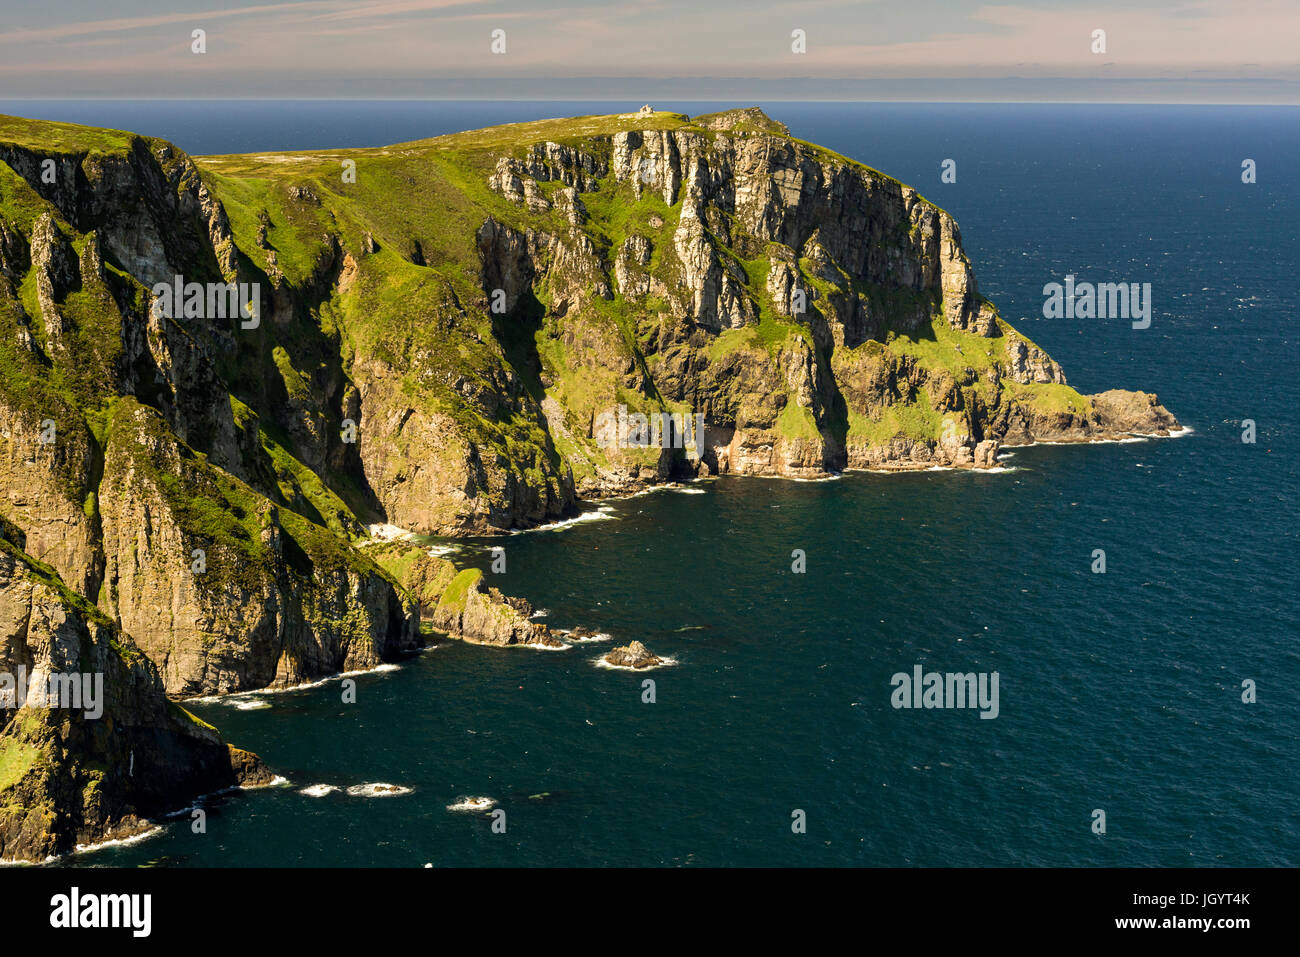 Mid-Summer sunshine over Horn Head on the causeway coastline of Donegal Ireland - Stock Image